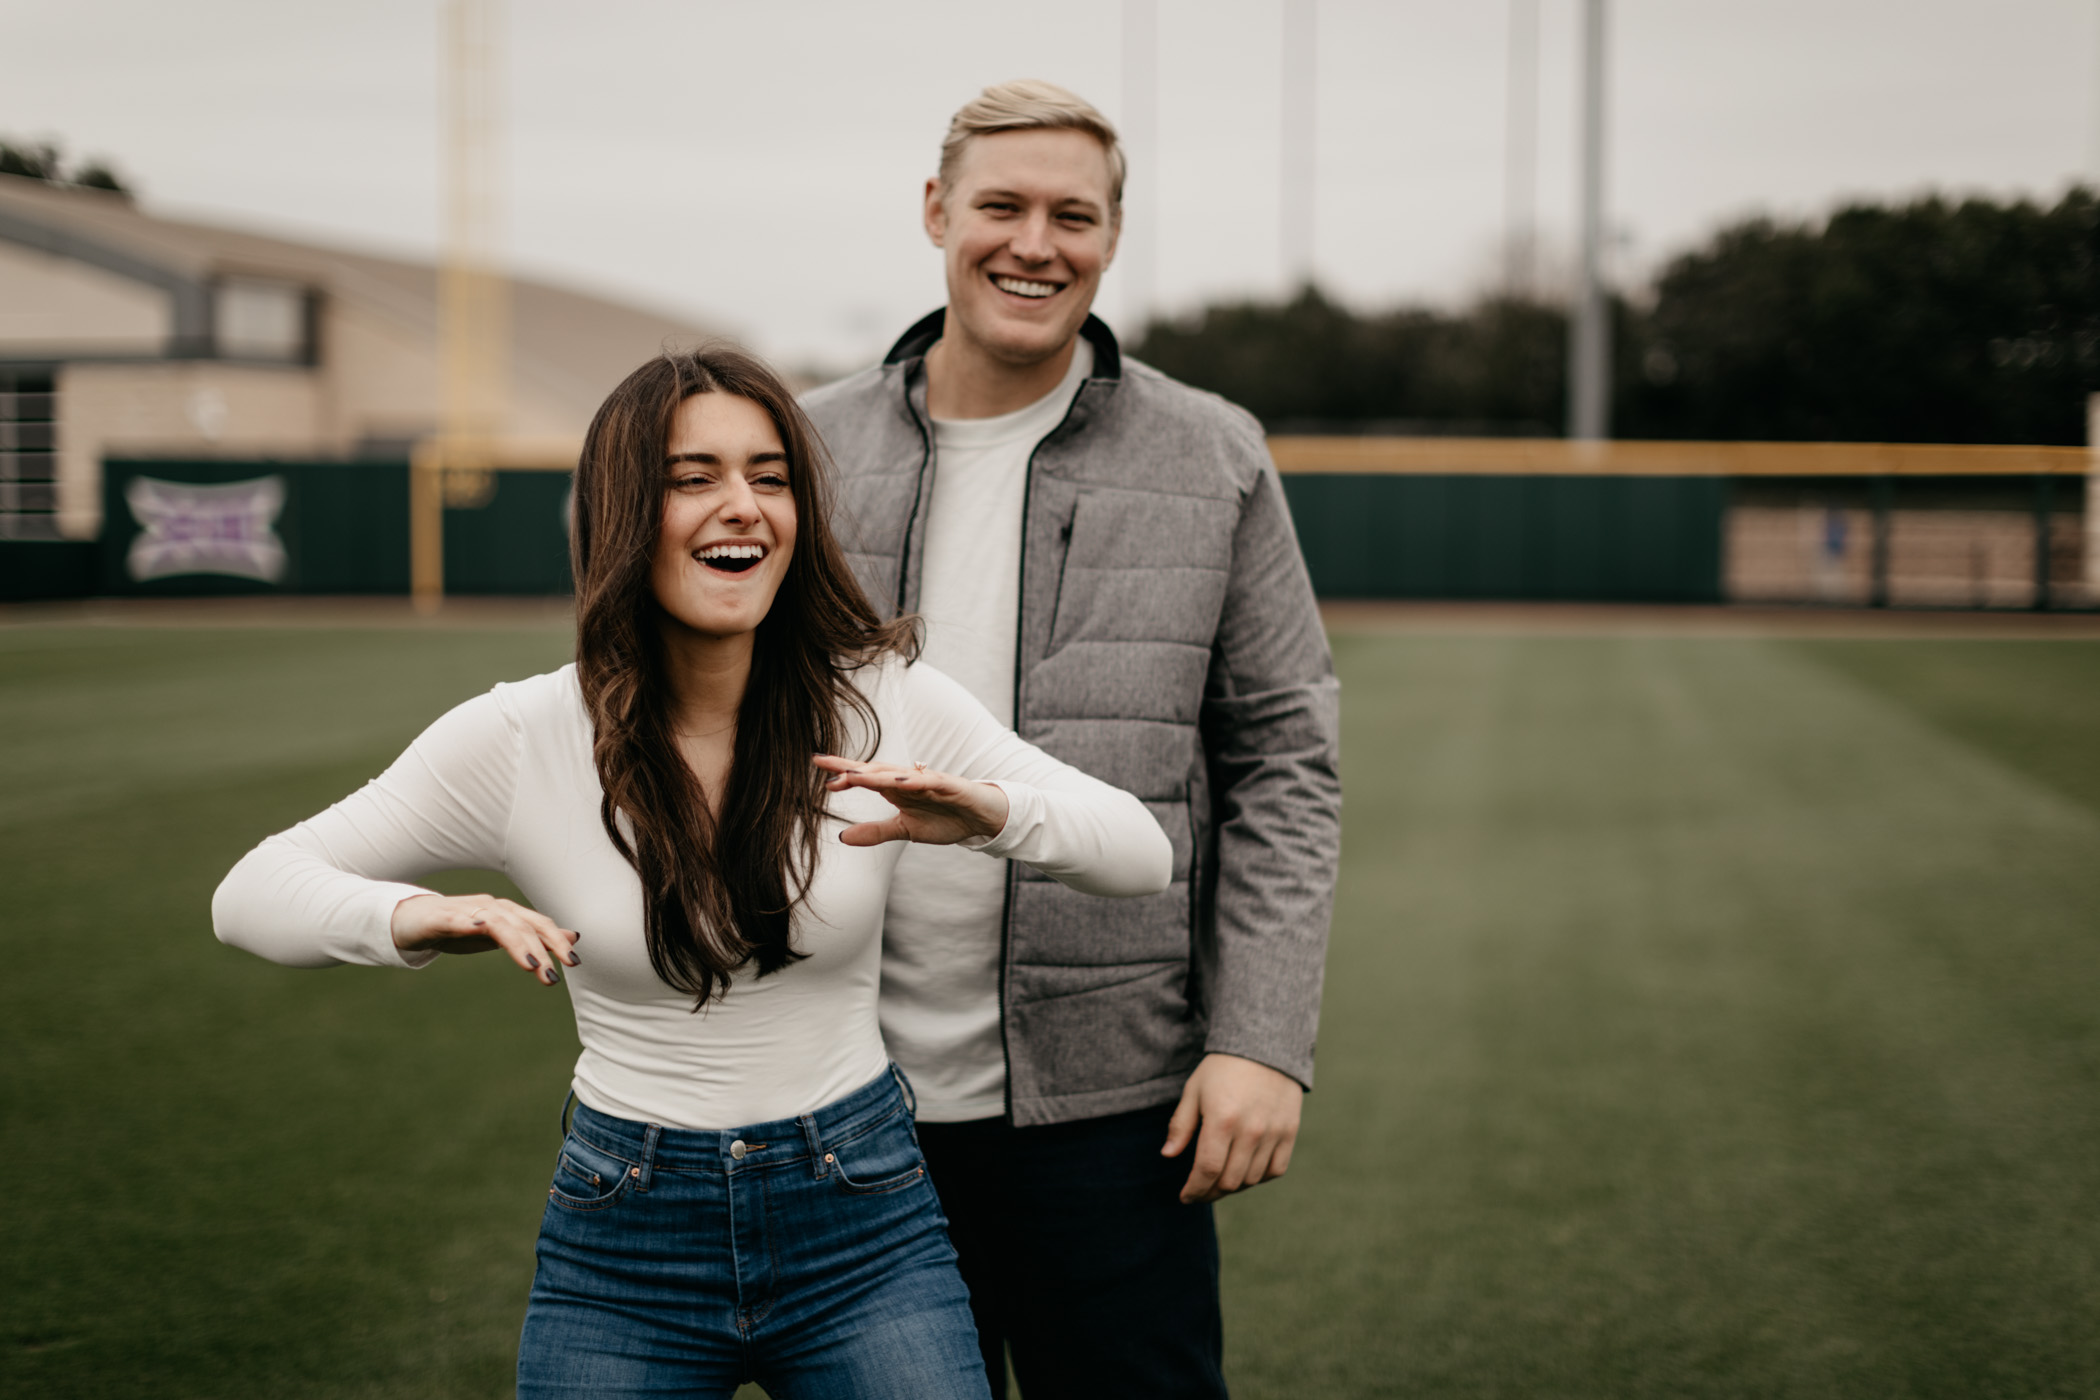 Playful photo of couple standing on TCU baseball field